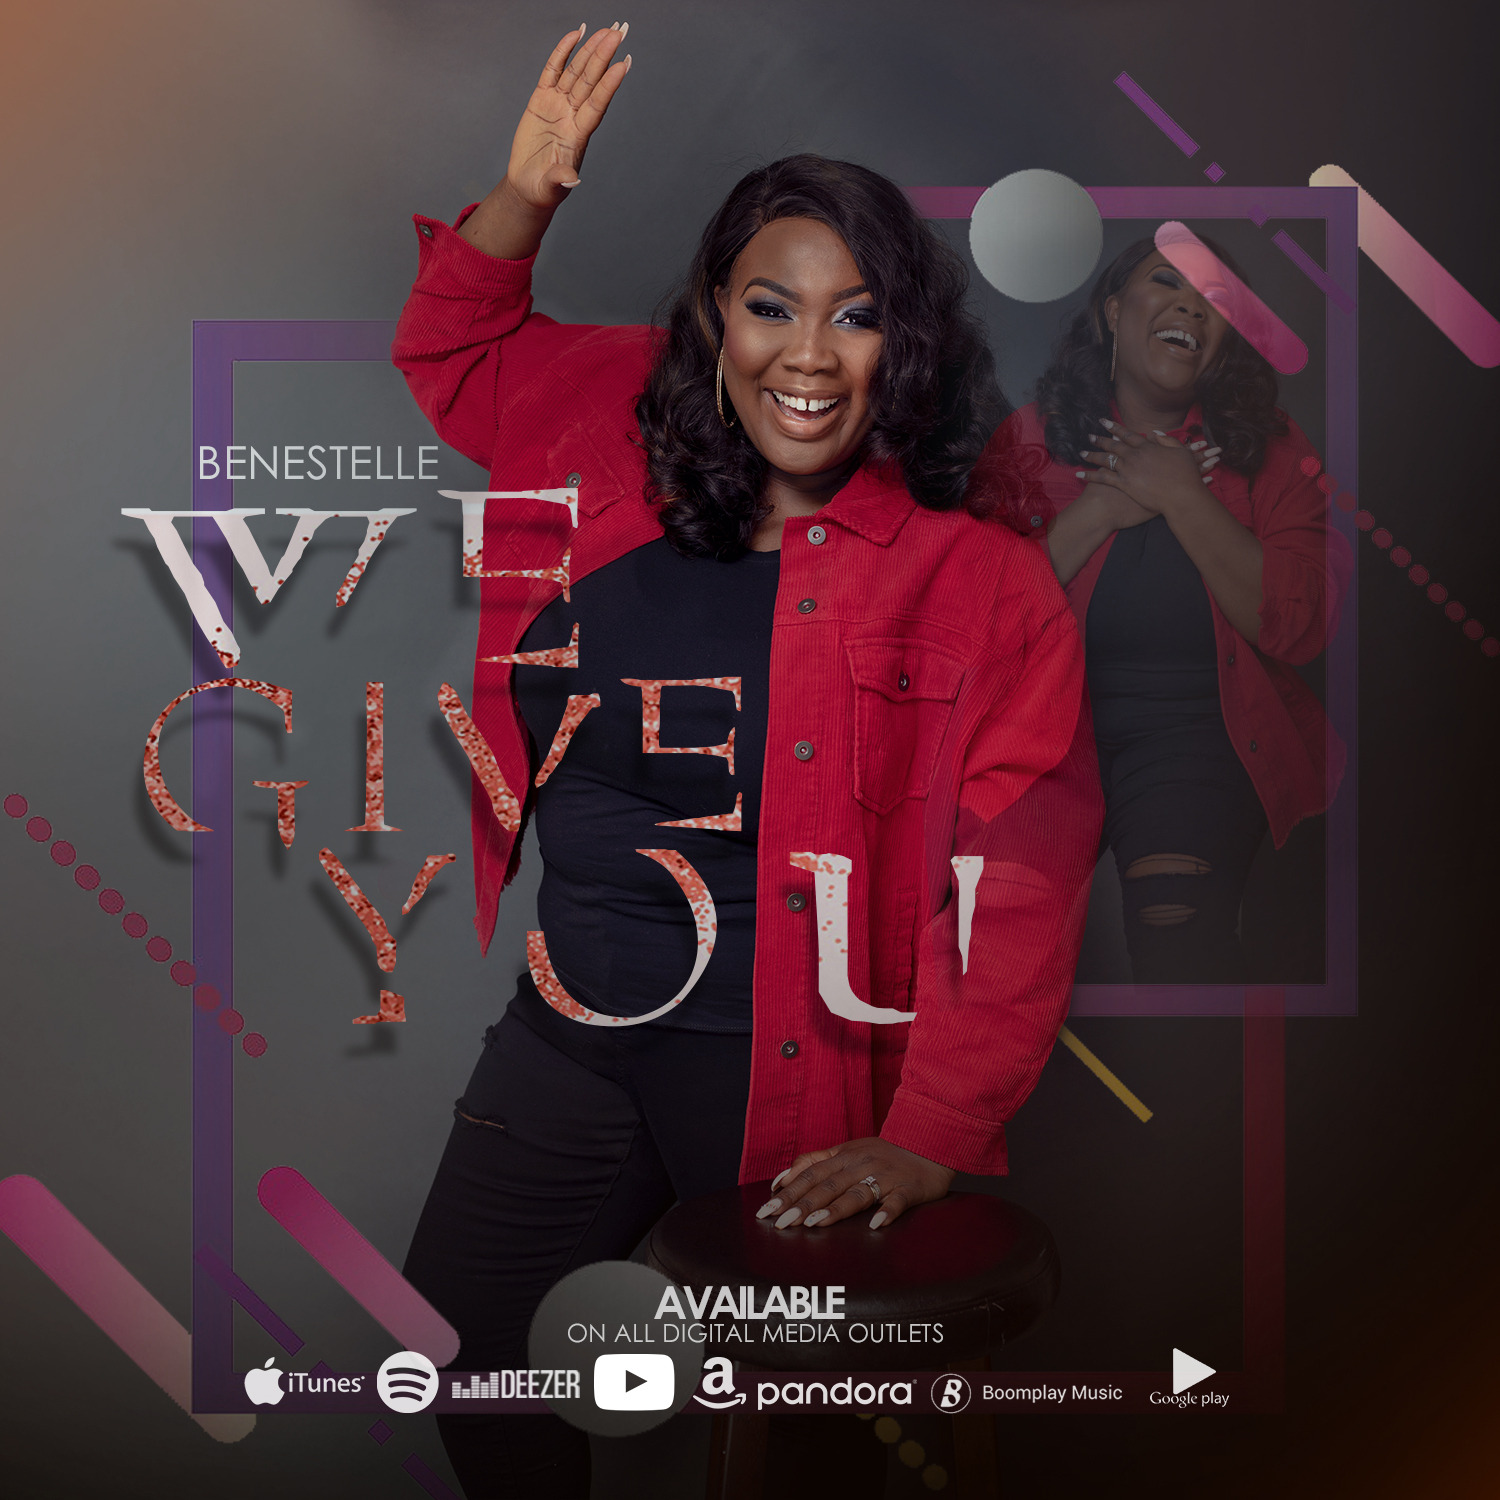 We Give You - Benestelle